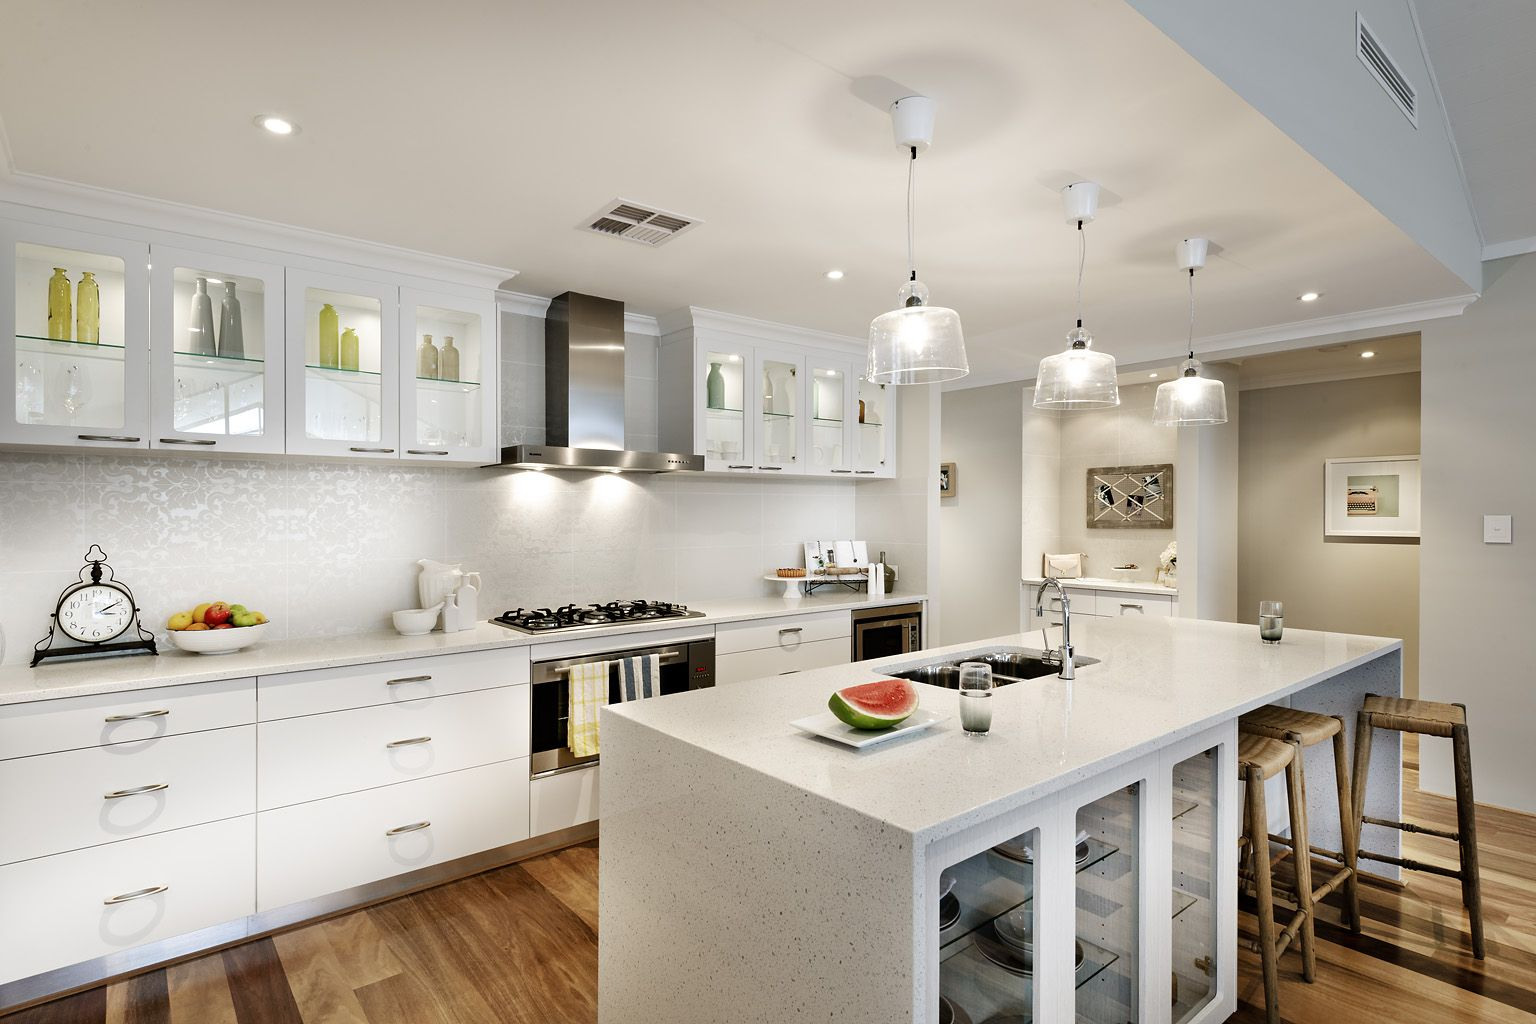 White Kitchen Hardwood Floors modern white kitchen wood floor ideas 614666 kitchen ideas design